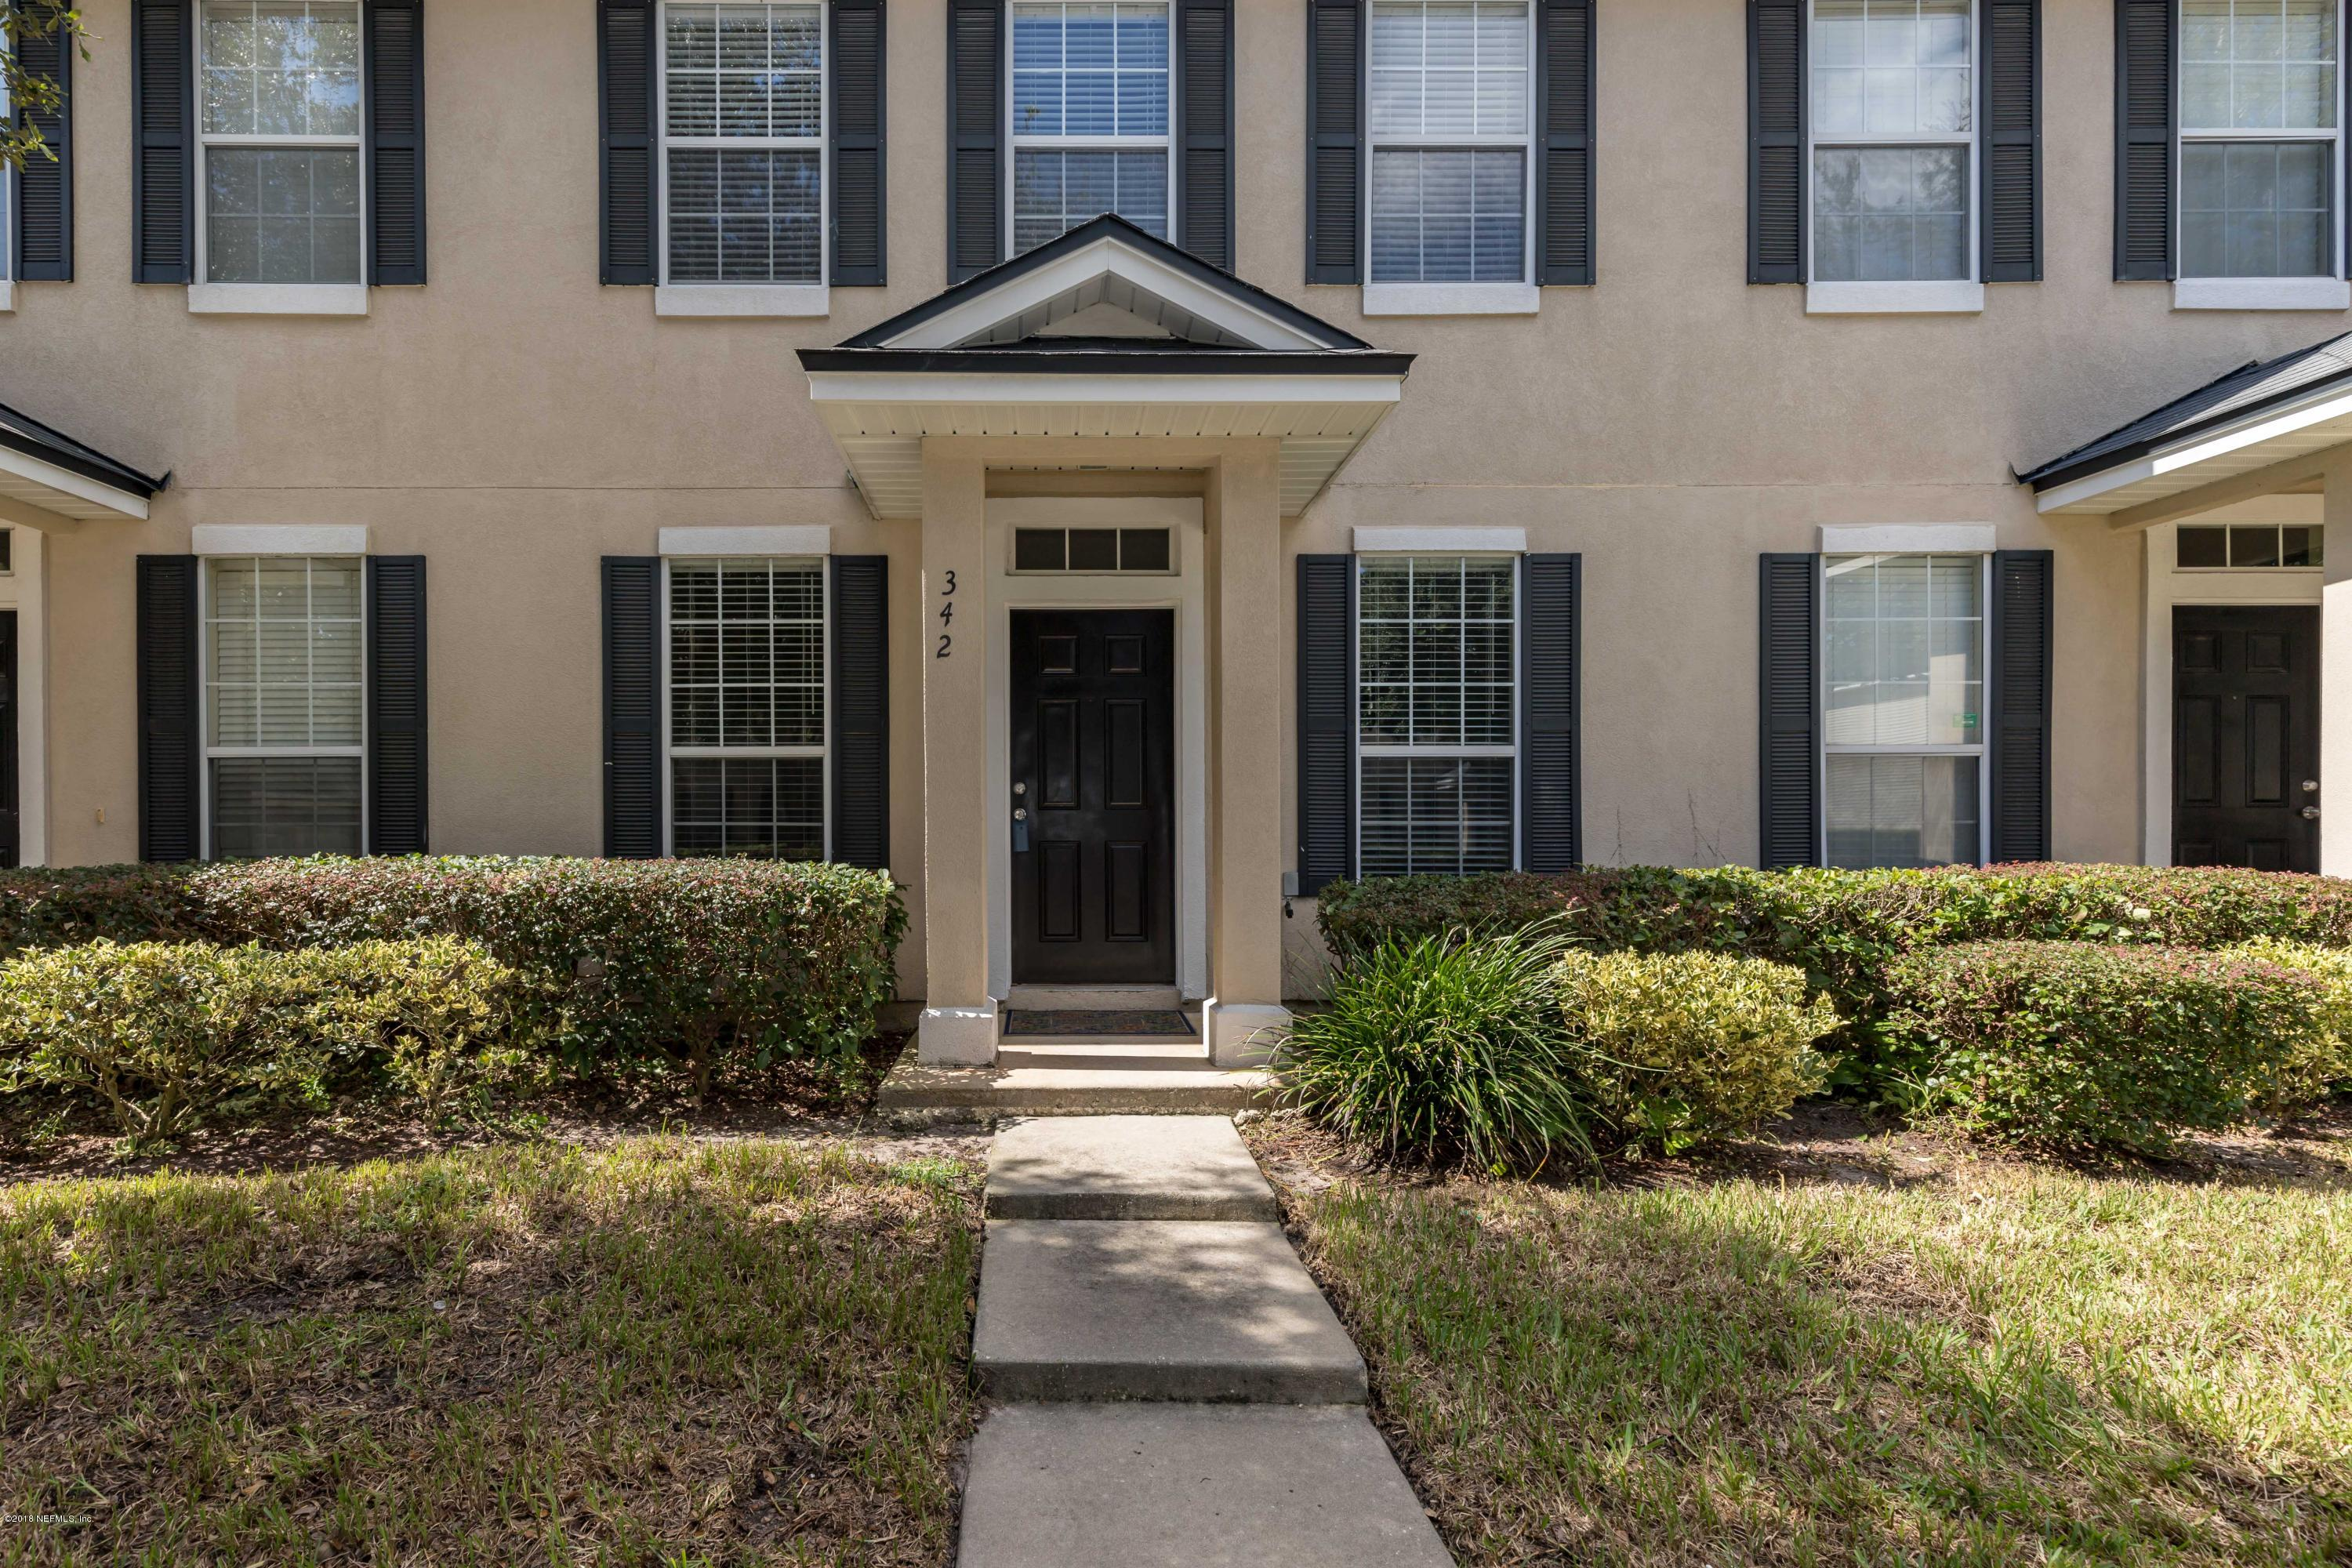 342 PECAN GROVE, ORANGE PARK, FLORIDA 32073, 3 Bedrooms Bedrooms, ,2 BathroomsBathrooms,Residential - townhome,For sale,PECAN GROVE,960128